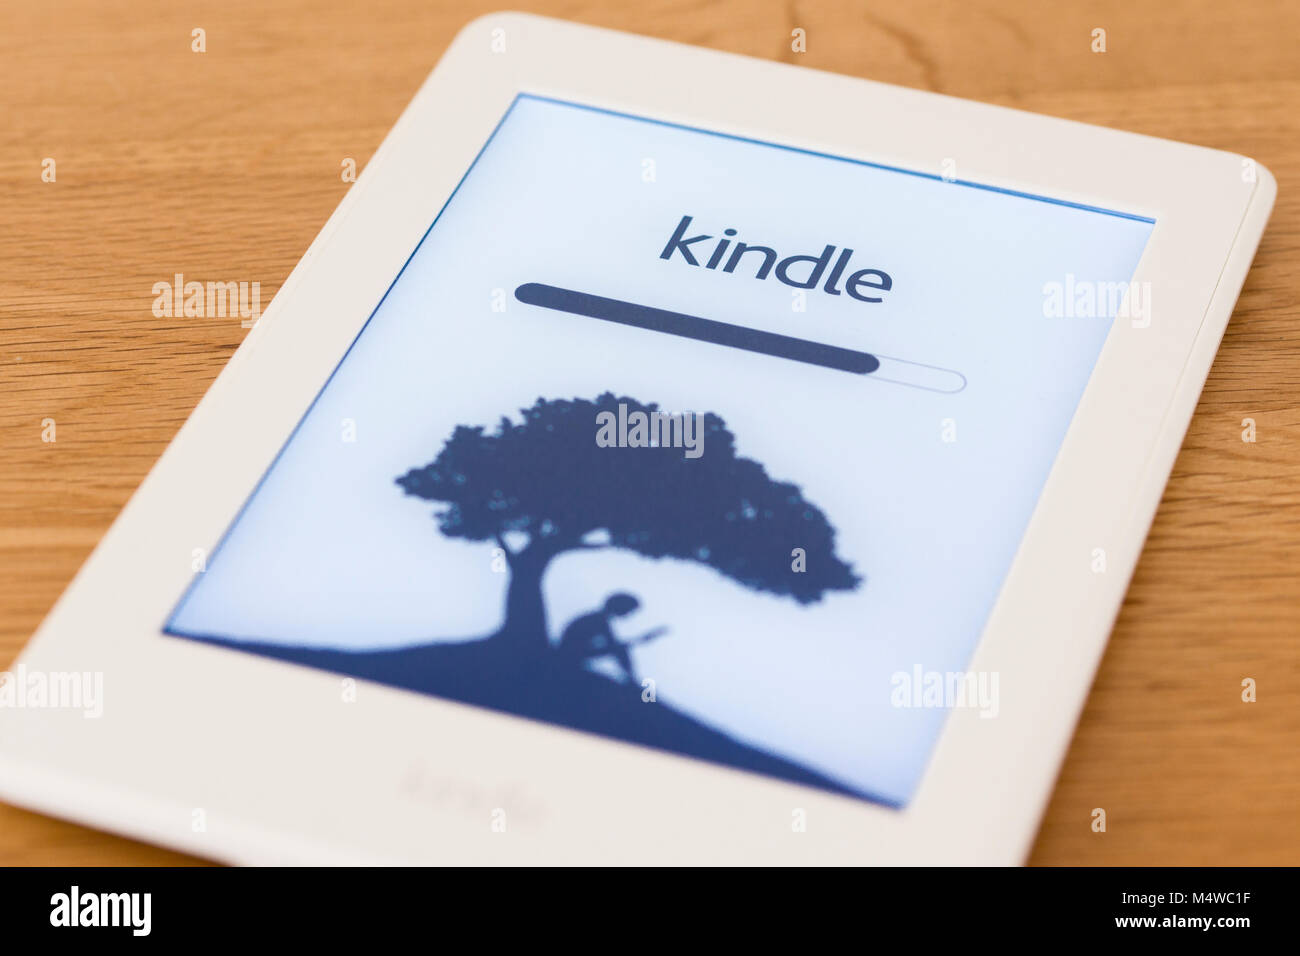 A kindle paperwhite eBook reader - Stock Image